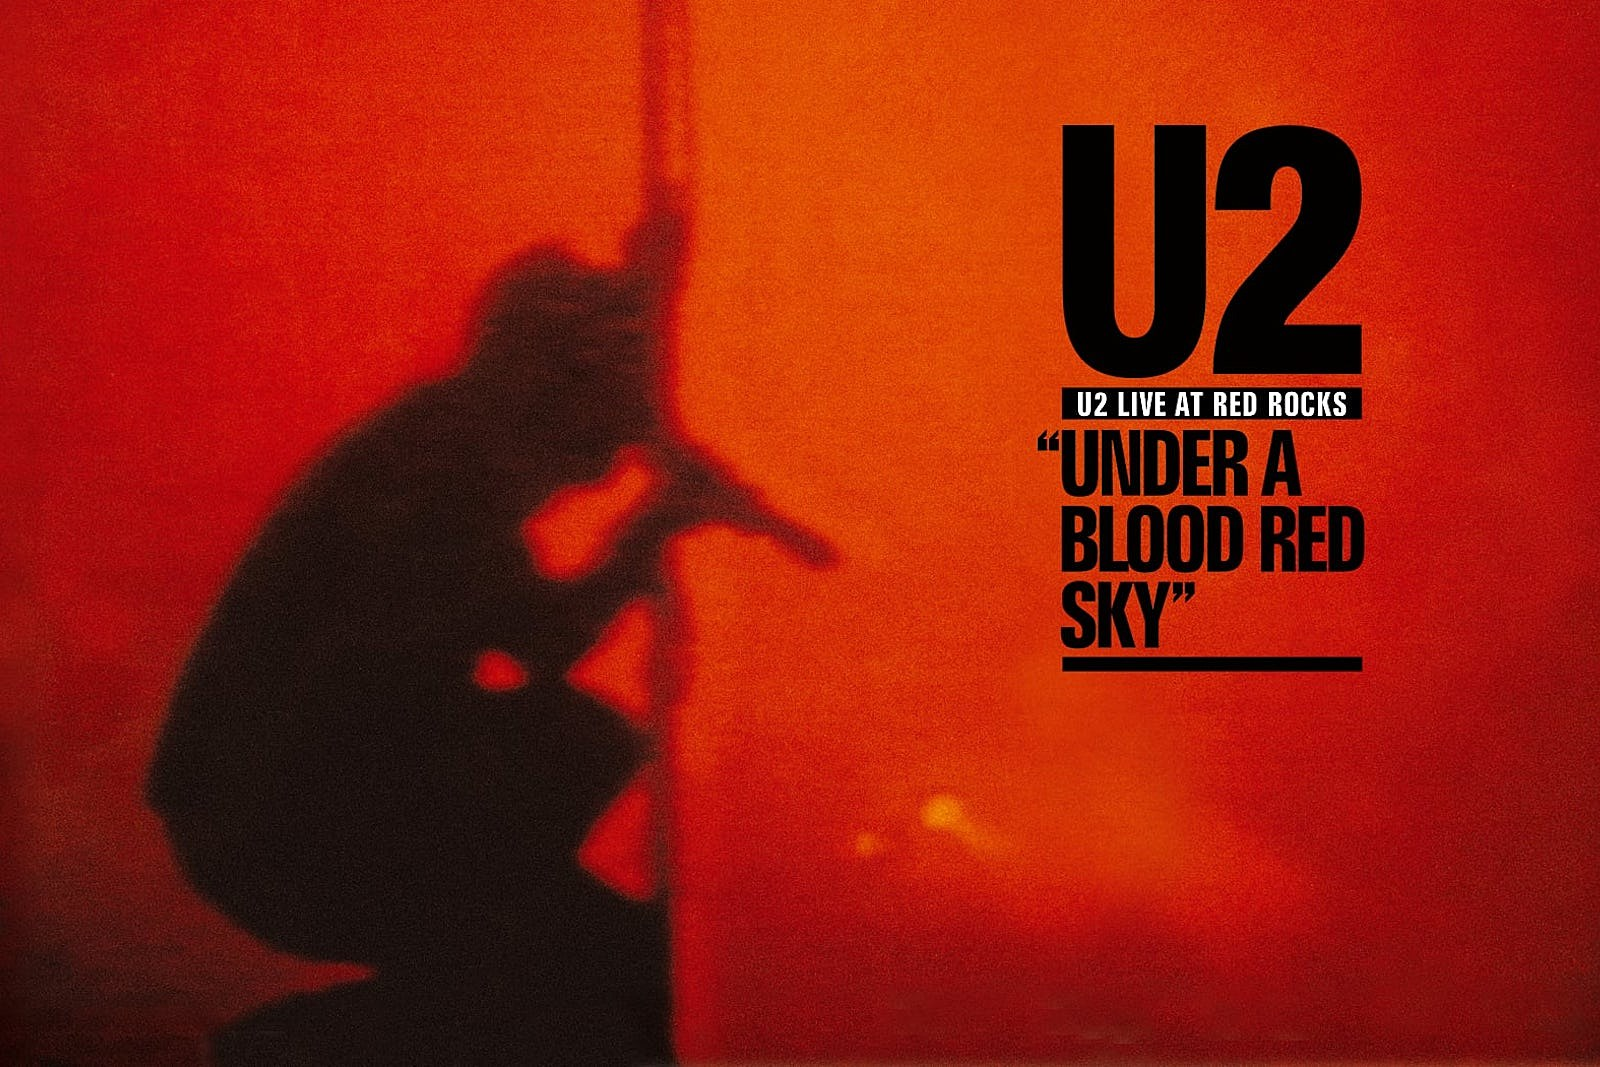 35 Years Ago: U2 Emerge as Arena-Rock Stars on 'Under a Blood Red Sky'